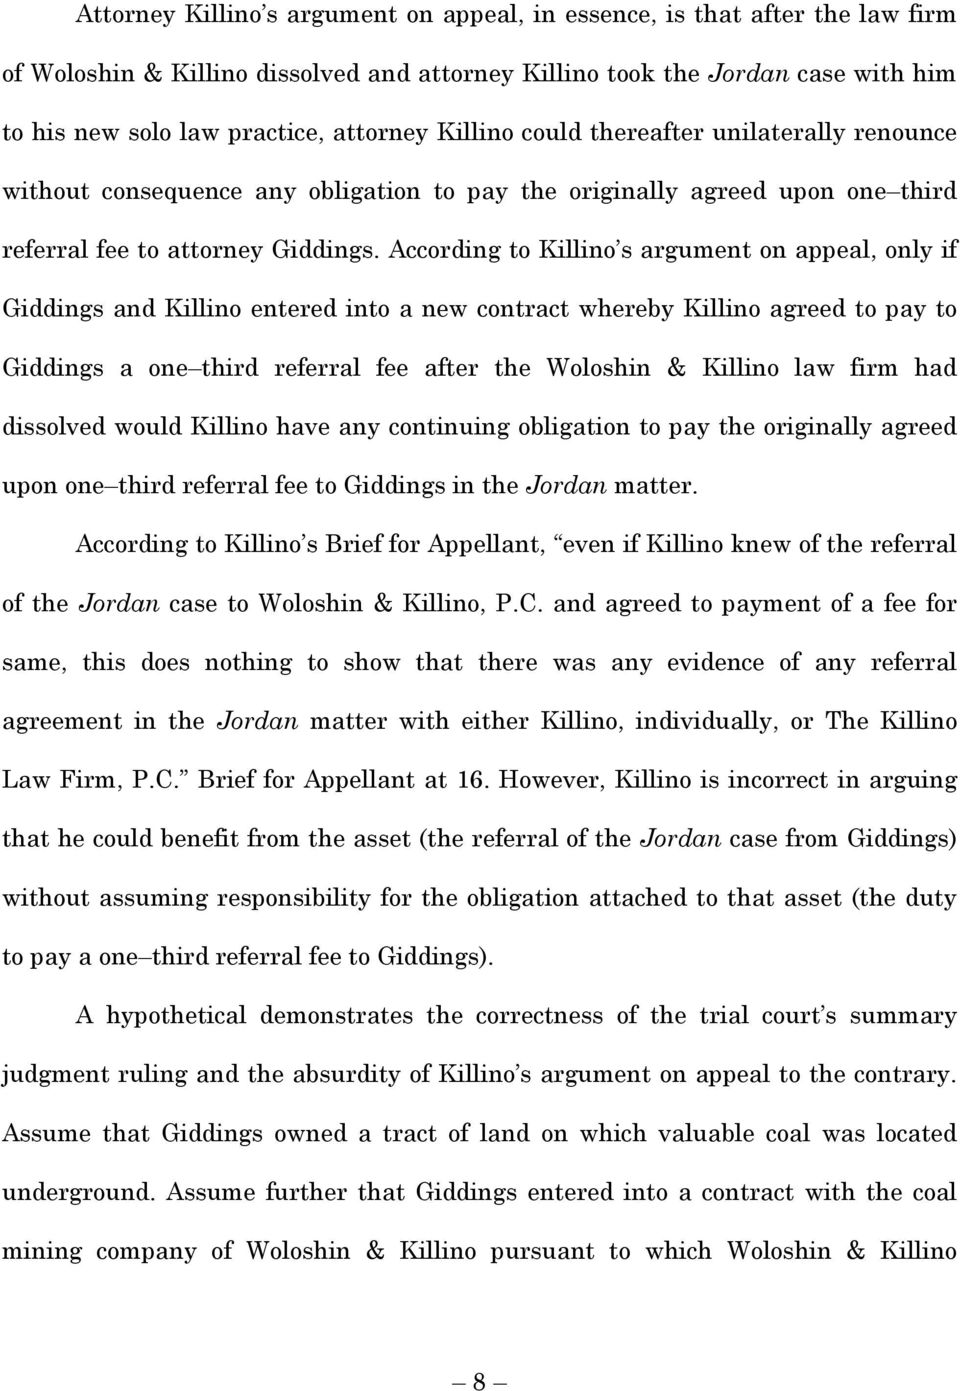 According to Killino s argument on appeal, only if Giddings and Killino entered into a new contract whereby Killino agreed to pay to Giddings a one third referral fee after the Woloshin & Killino law